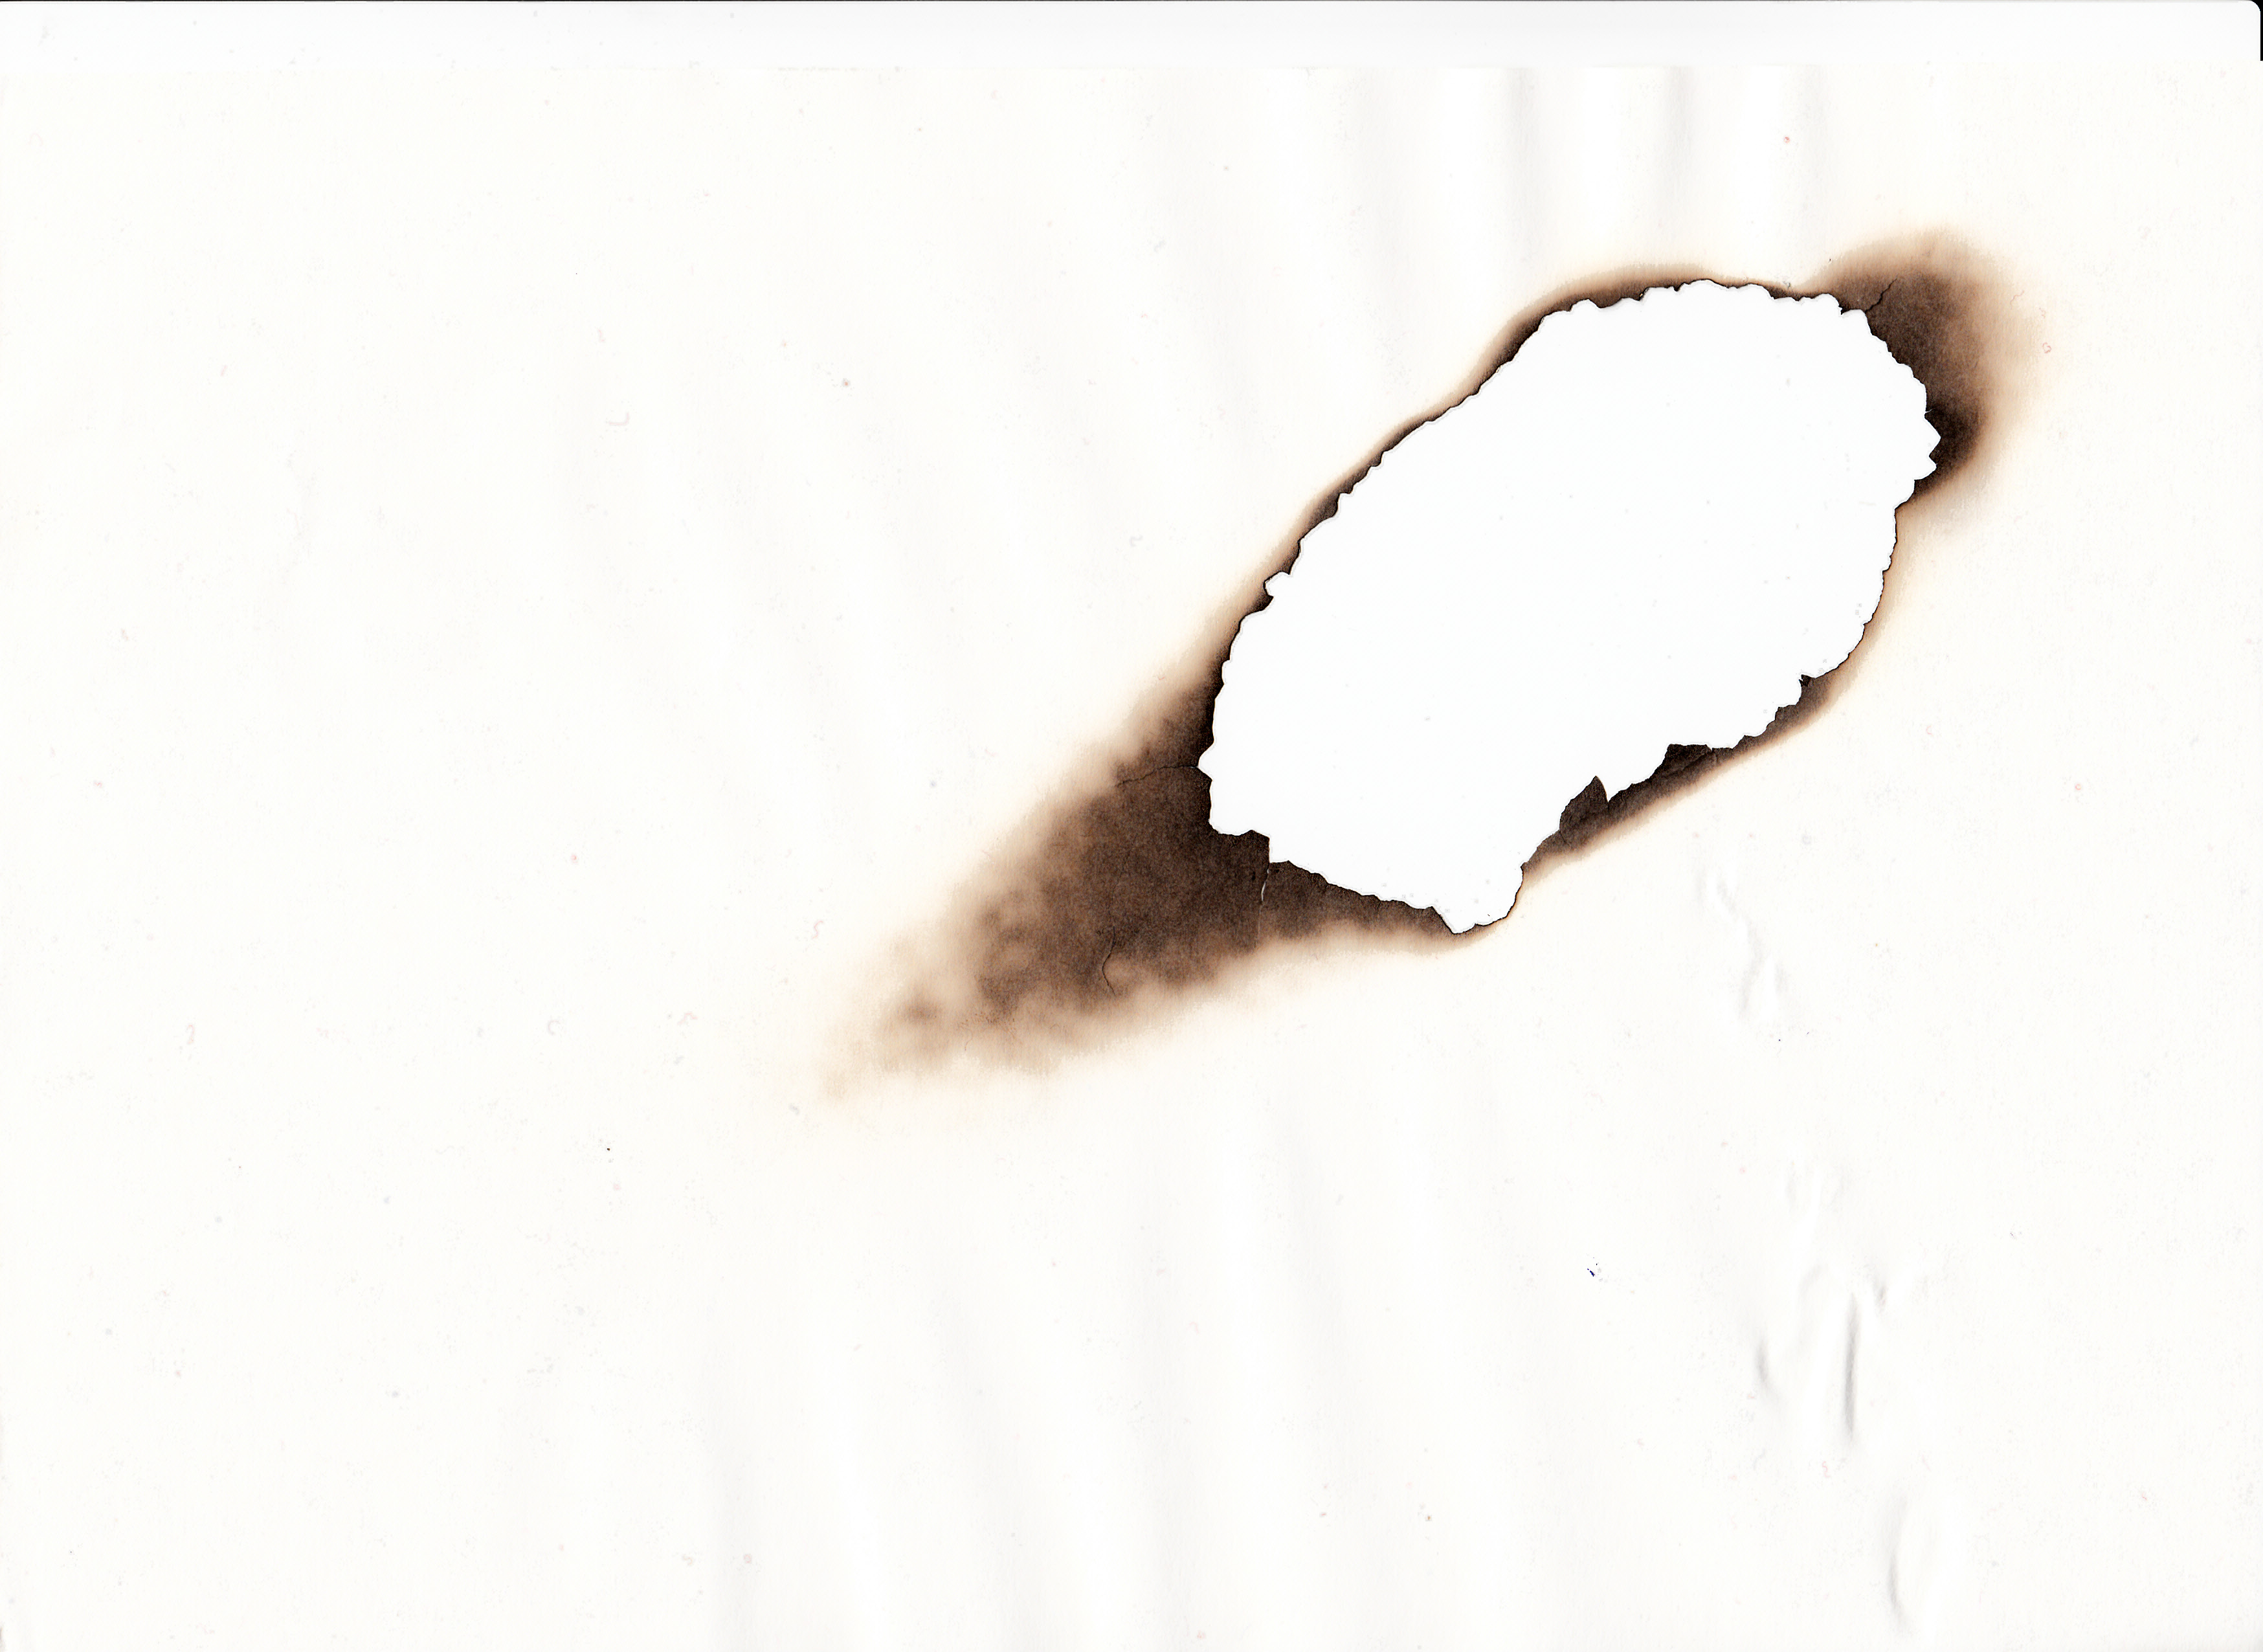 burnt paper Find the perfect burnt paper hole stock photo huge collection, amazing choice, 100+ million high quality, affordable rf and rm images no need to register, buy now.